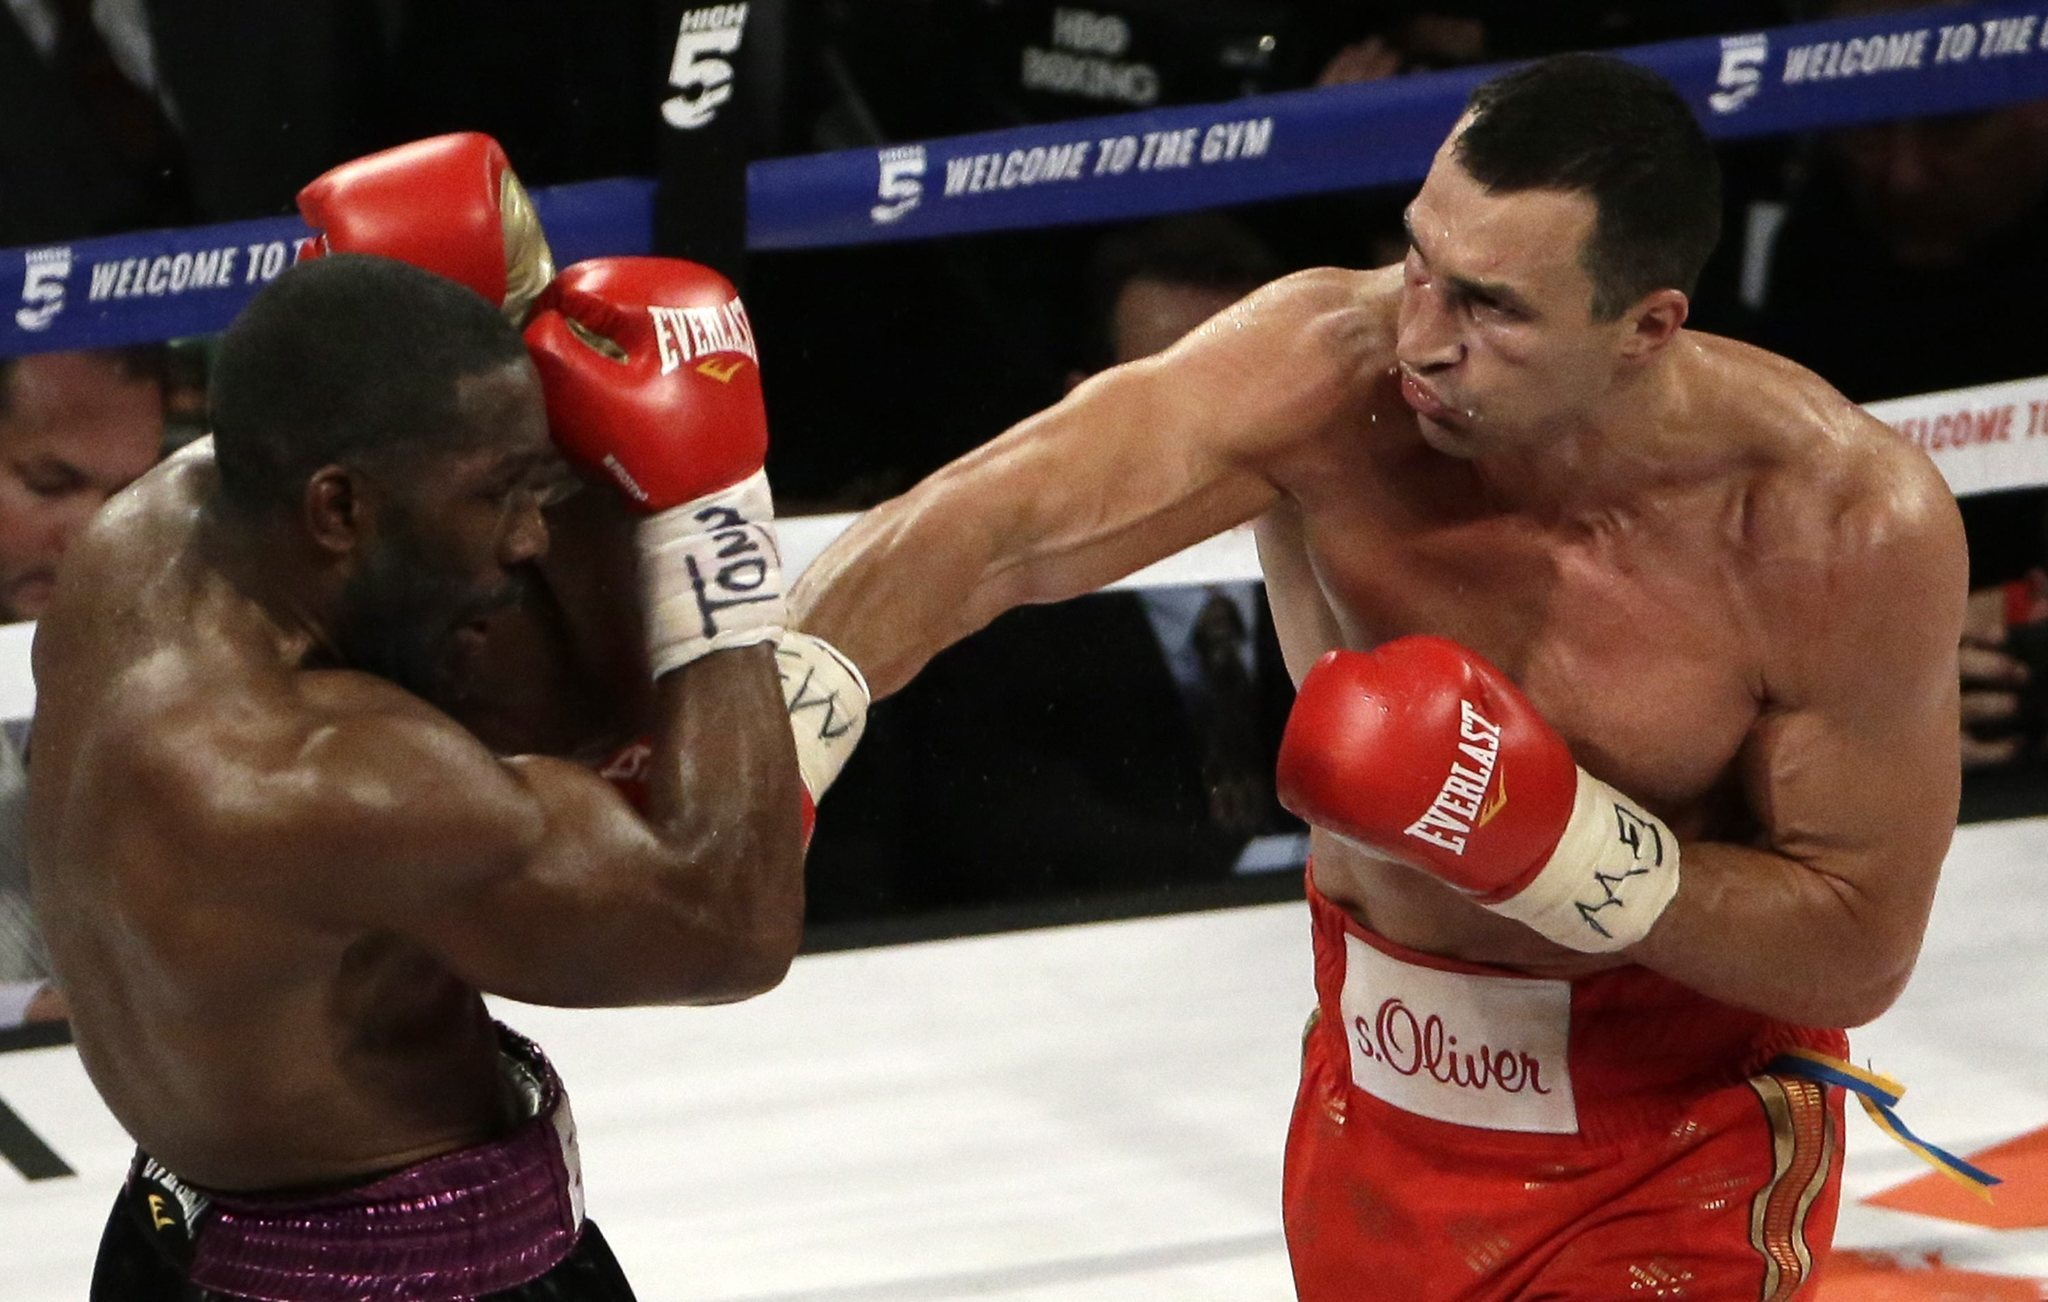 Wladimir Klitschko gets easy victory over Bryant Jennings